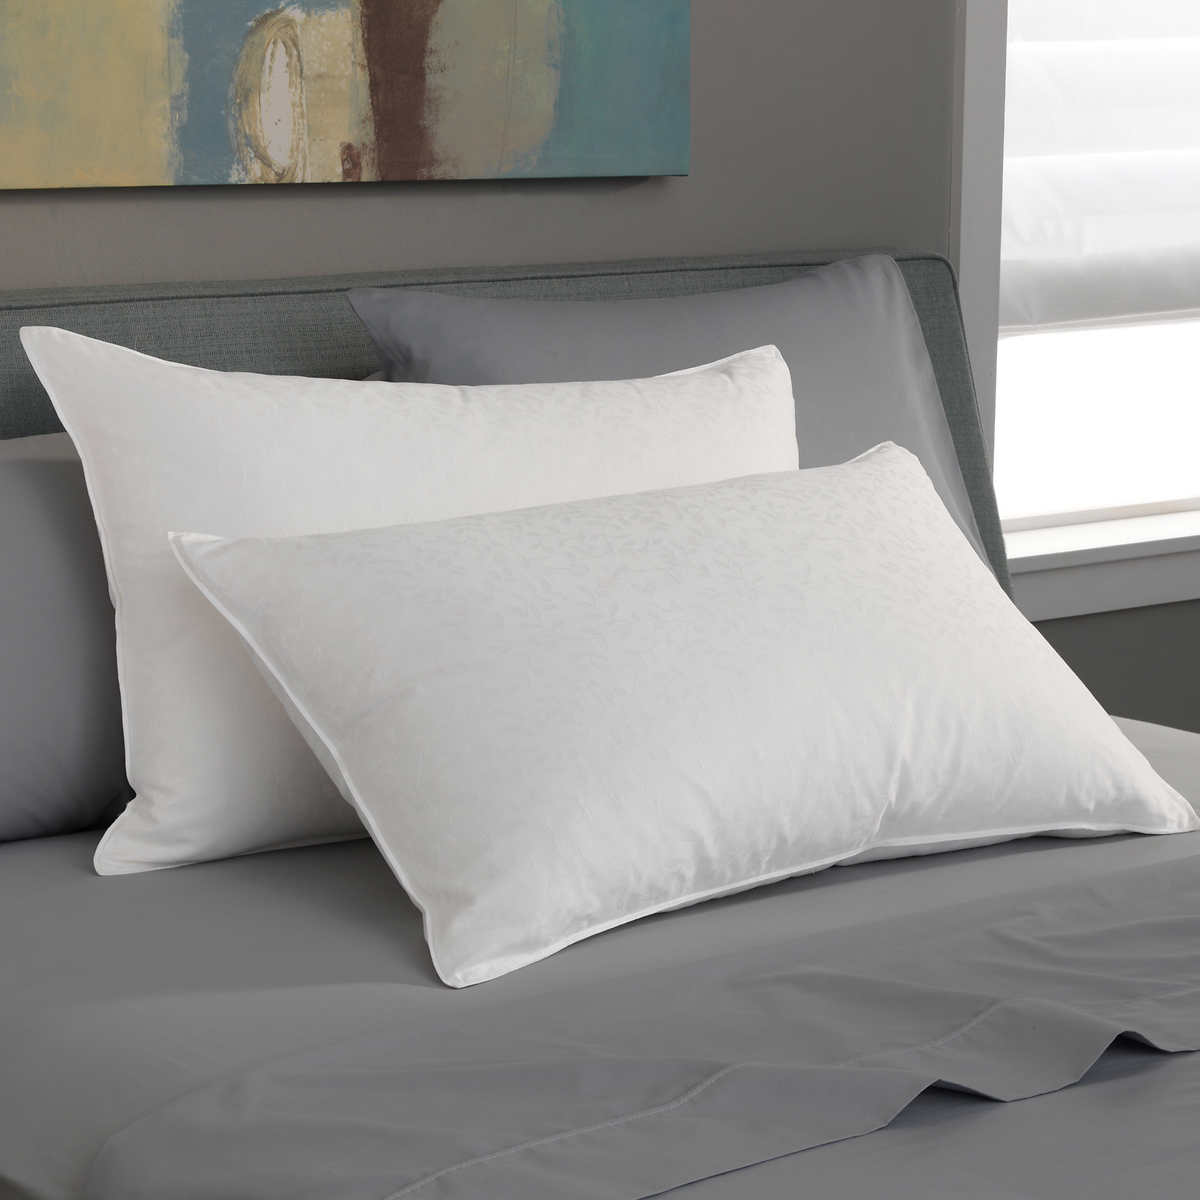 White bed pillows - Pacific Coast Firm Support White Goose Down Luxury Pillow